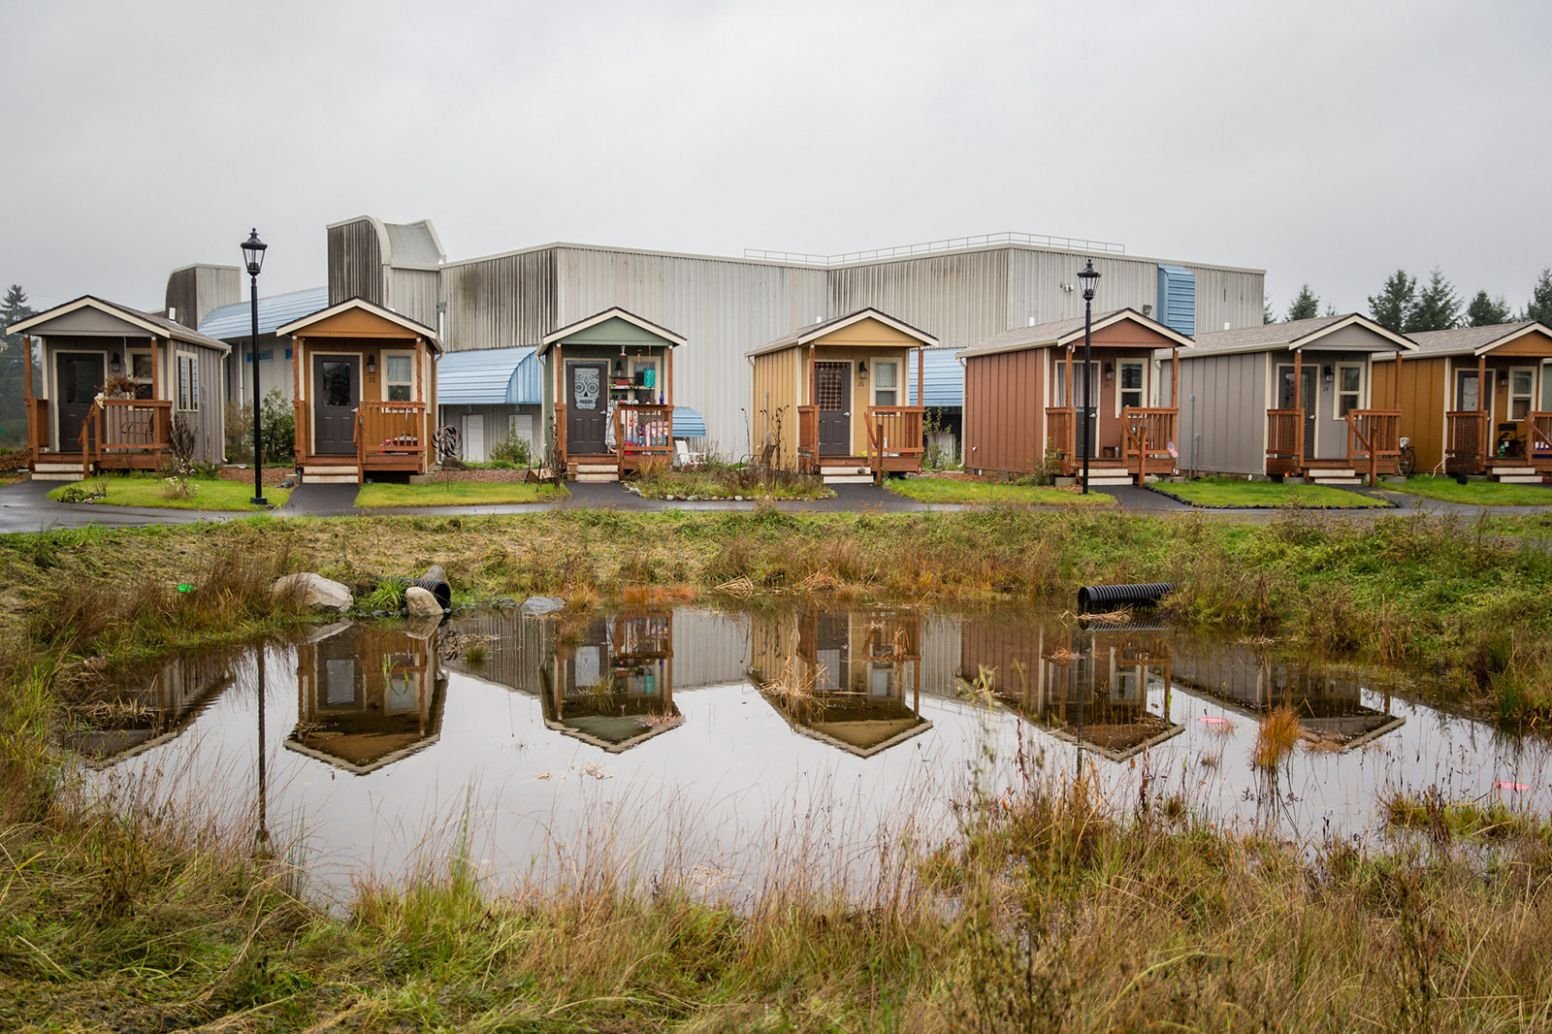 Tiny House Villages - The Next Big Housing Trend | Living Big In A ..